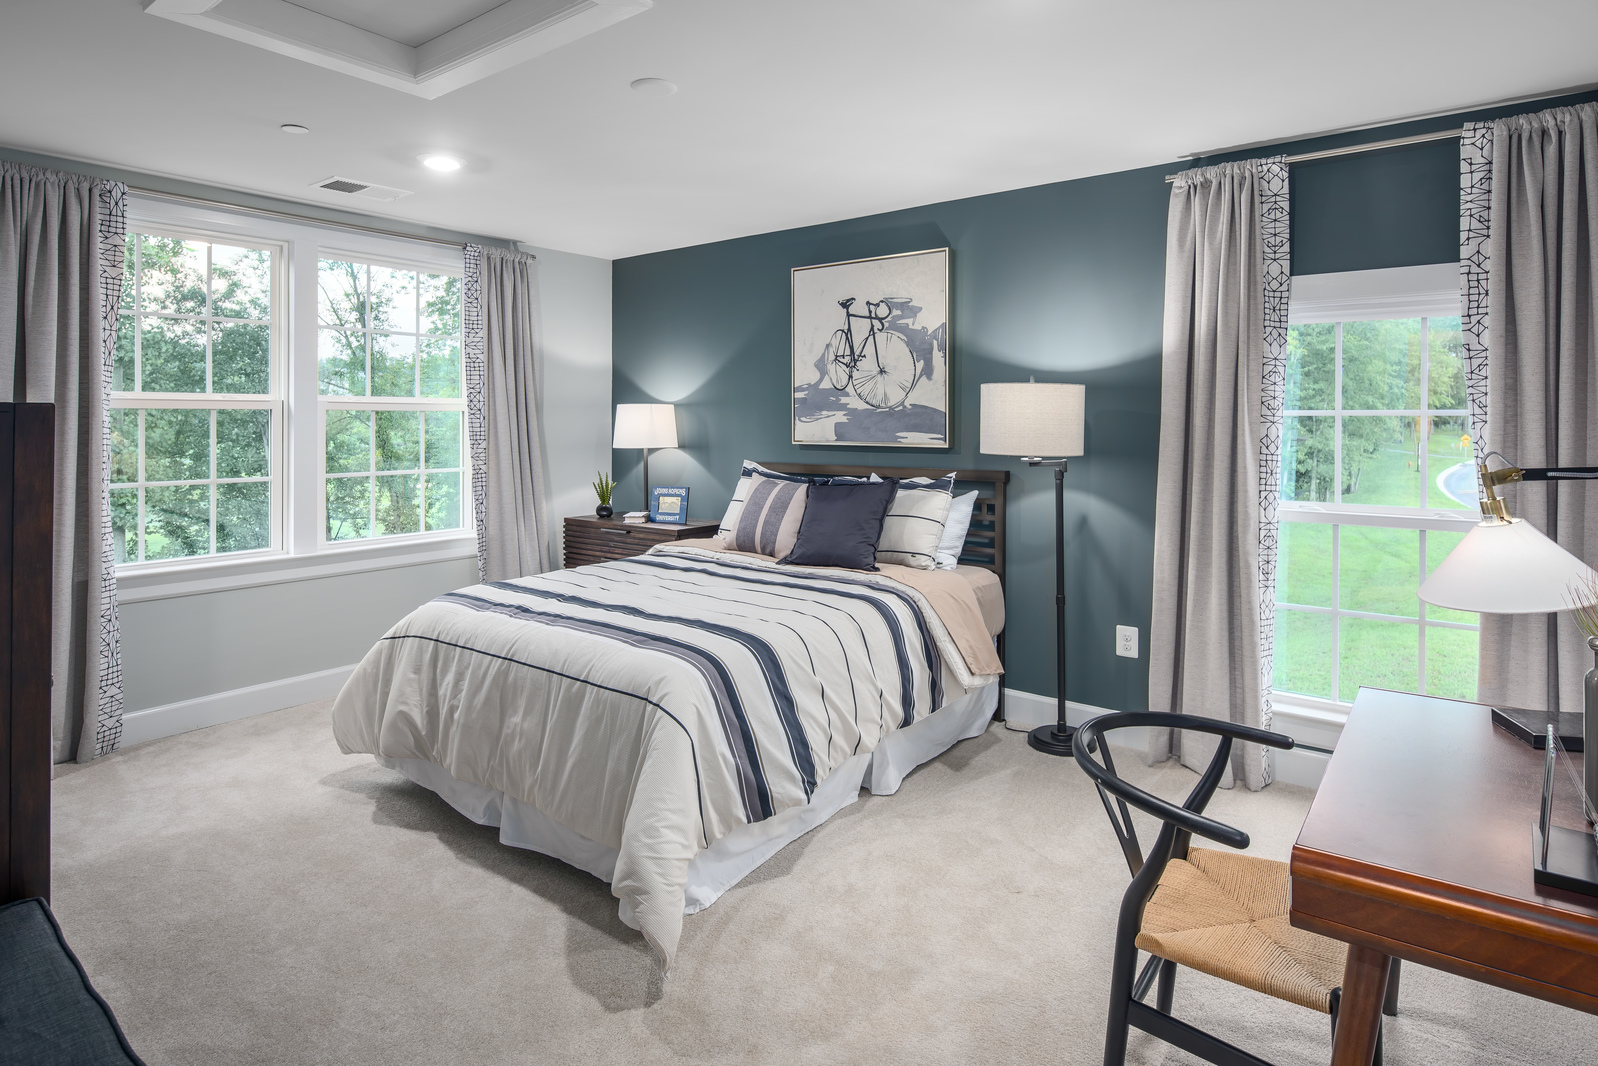 Treat guests and family members to sizable secondary bedrooms with ample storage.